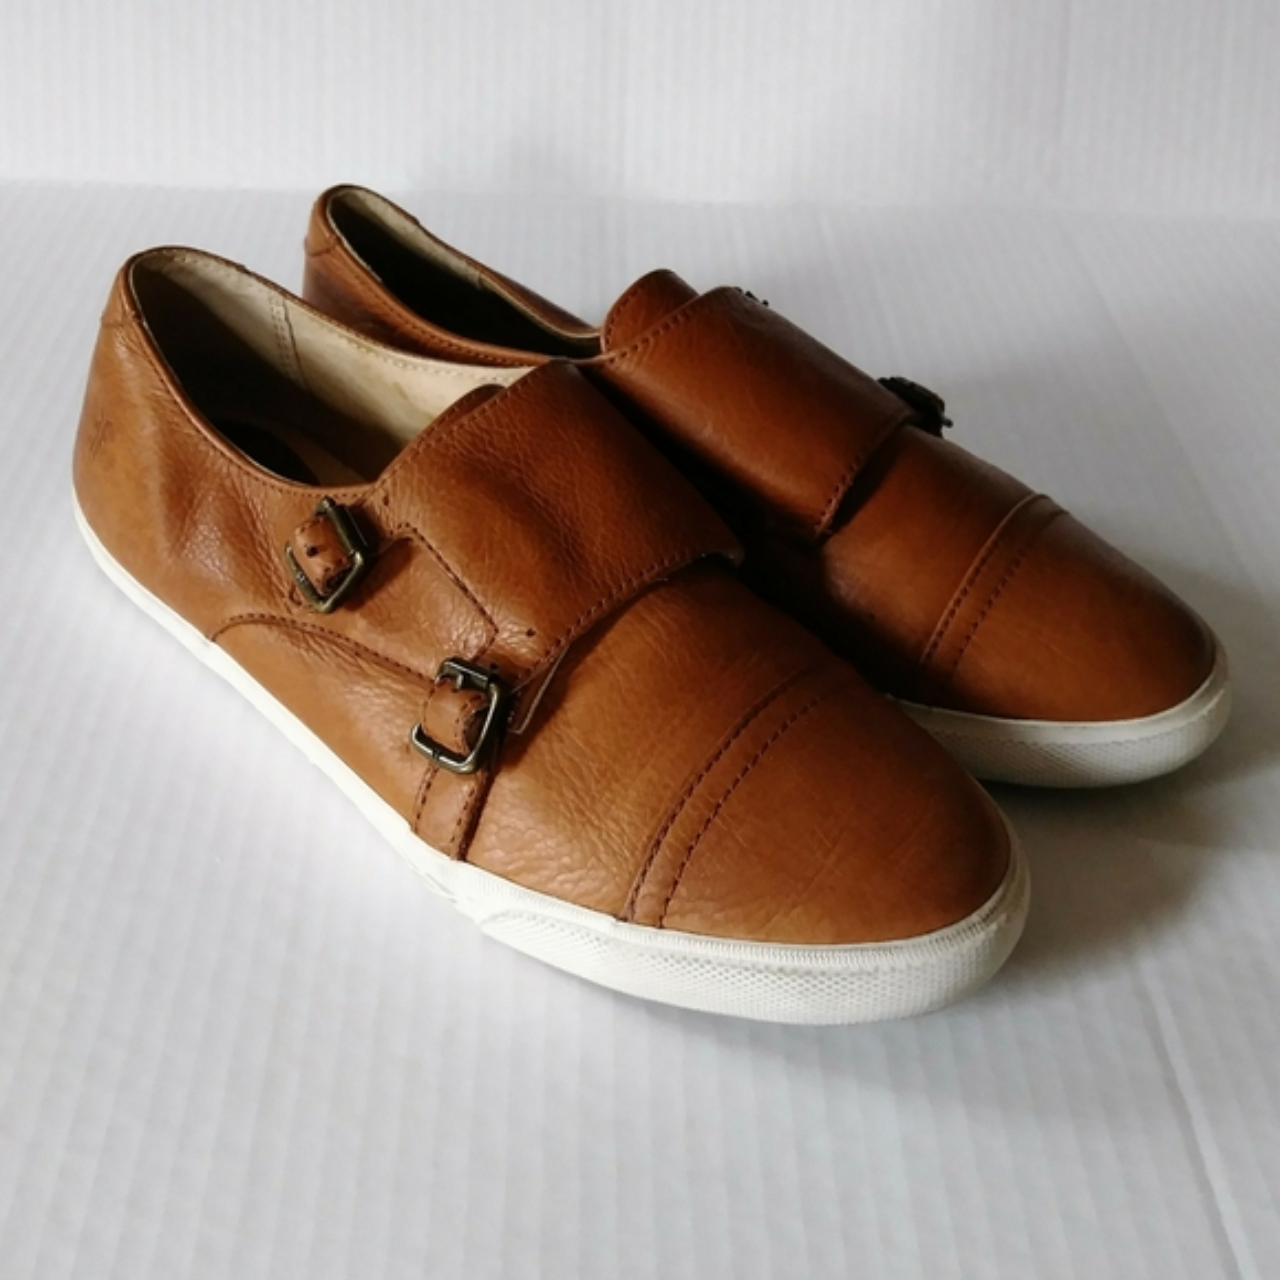 Product Image 1 - Frye Mindy Monk tan leather